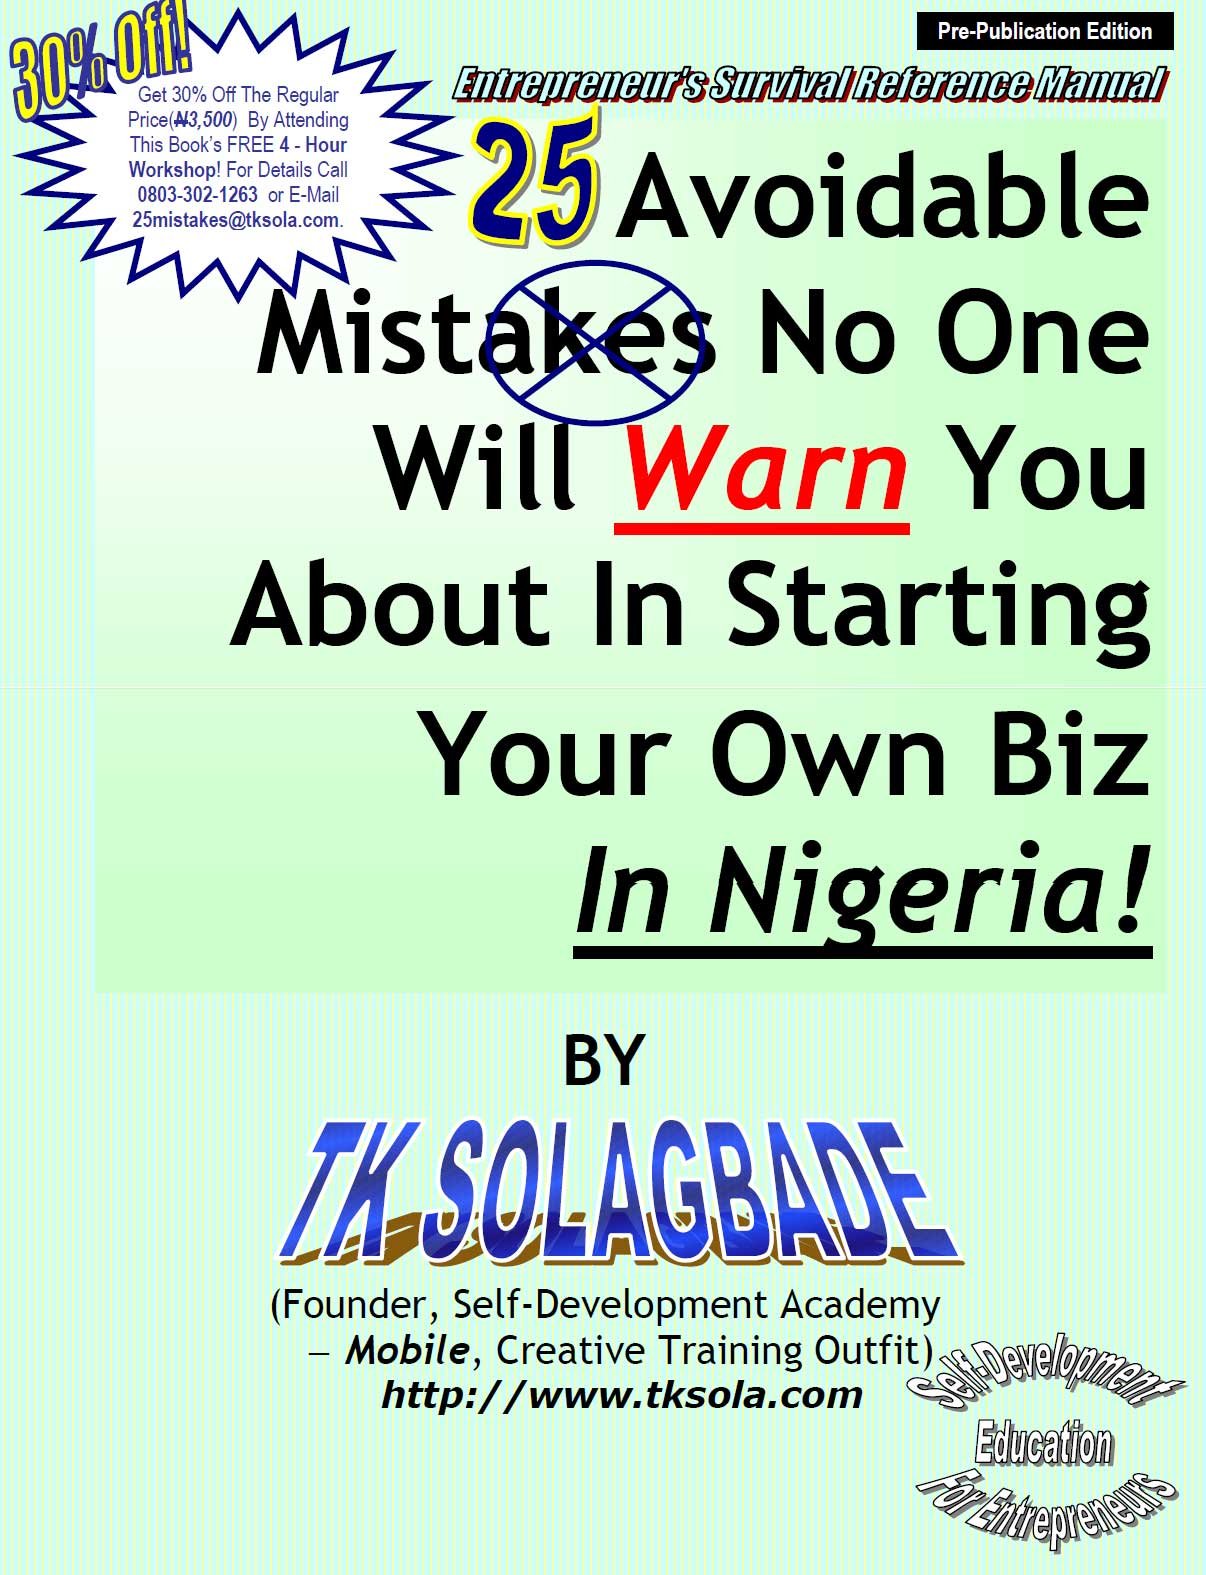 25 Avoidable Mistakes No One Will Warn You About In Starting Your OWN Business – in Nigeria.